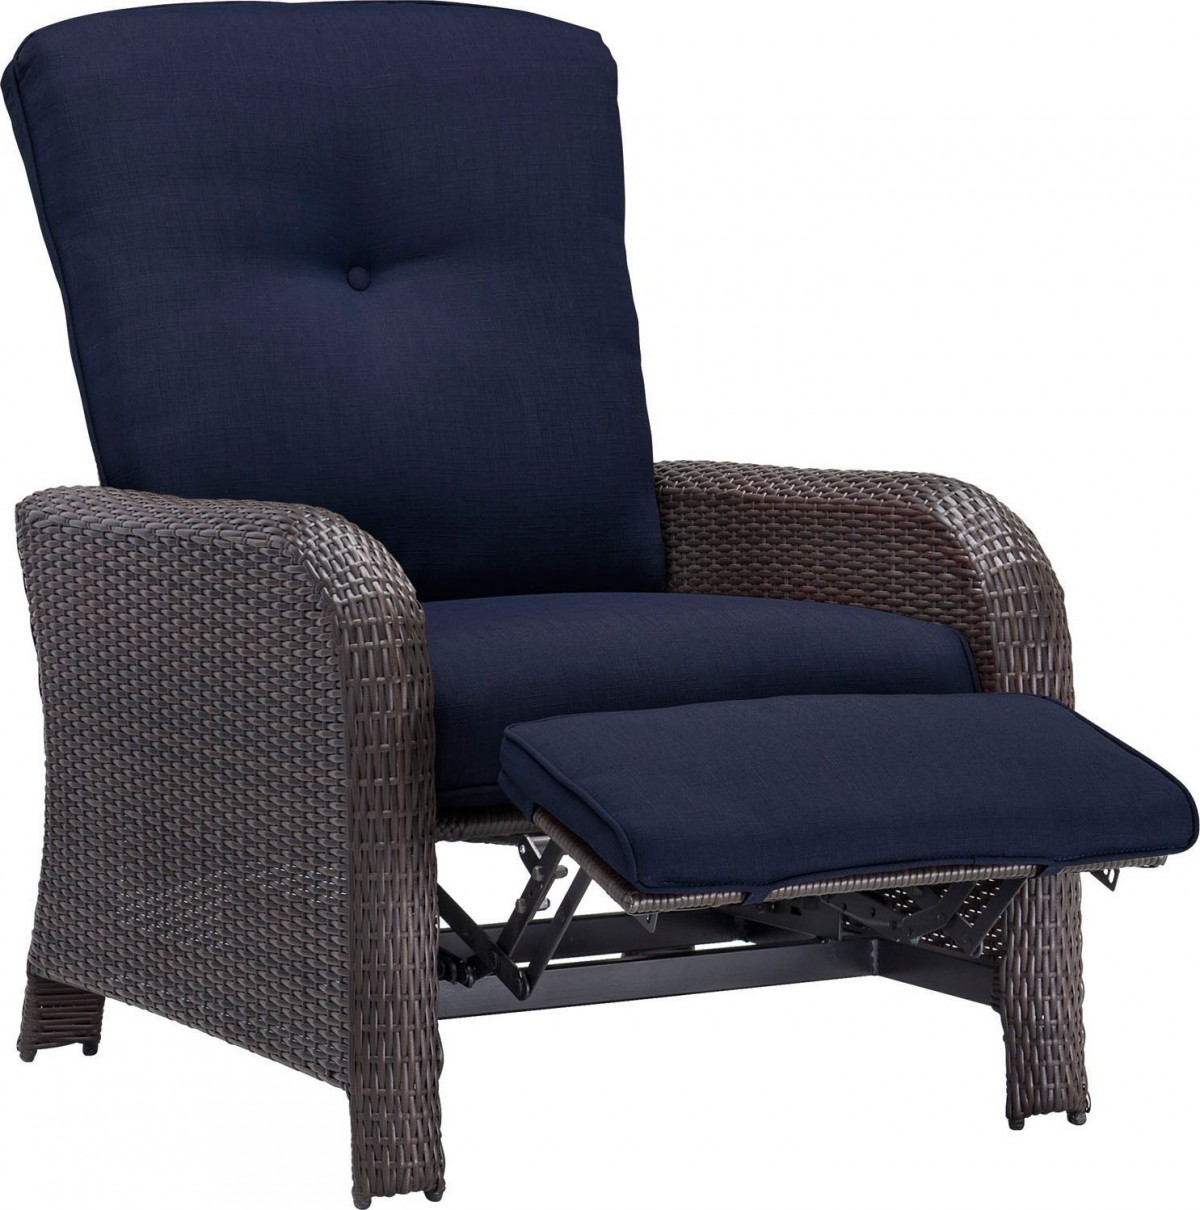 Outdoor Recliner Chair Hanover Strathmere Luxury Wicker Outdoor Recliner Chair